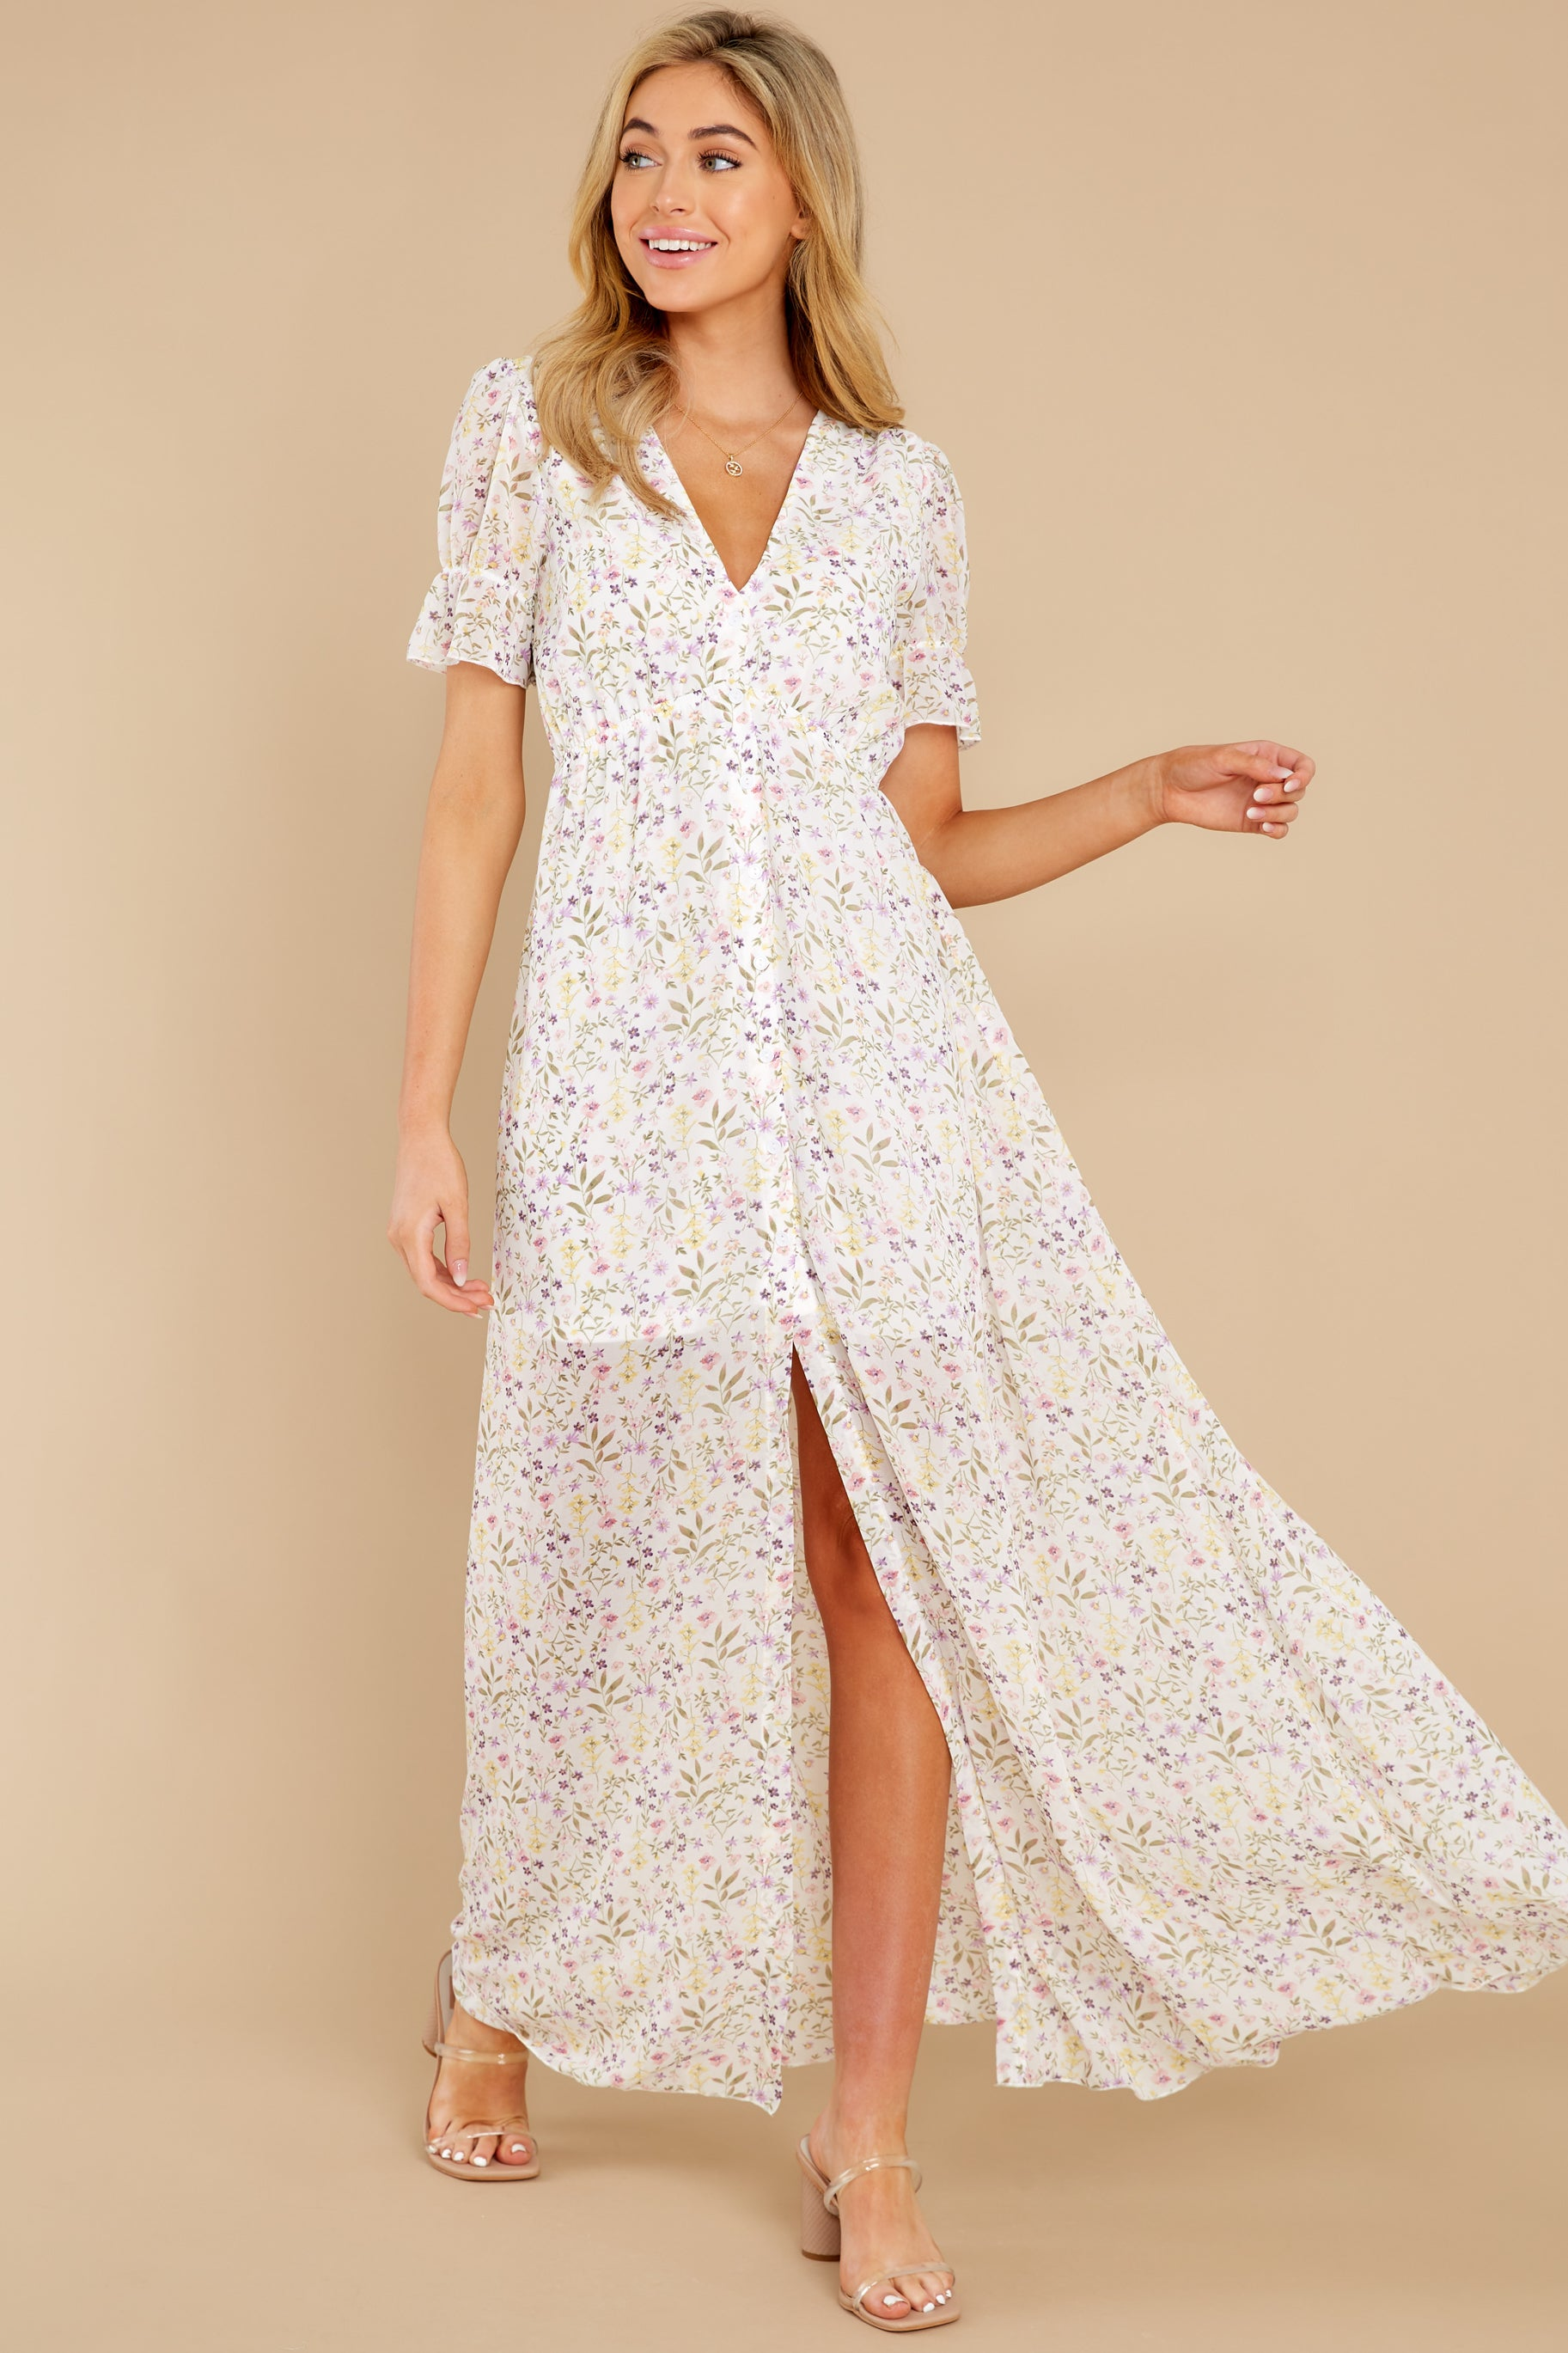 4 Work Of Art White Floral Print Maxi Dress at reddress.com